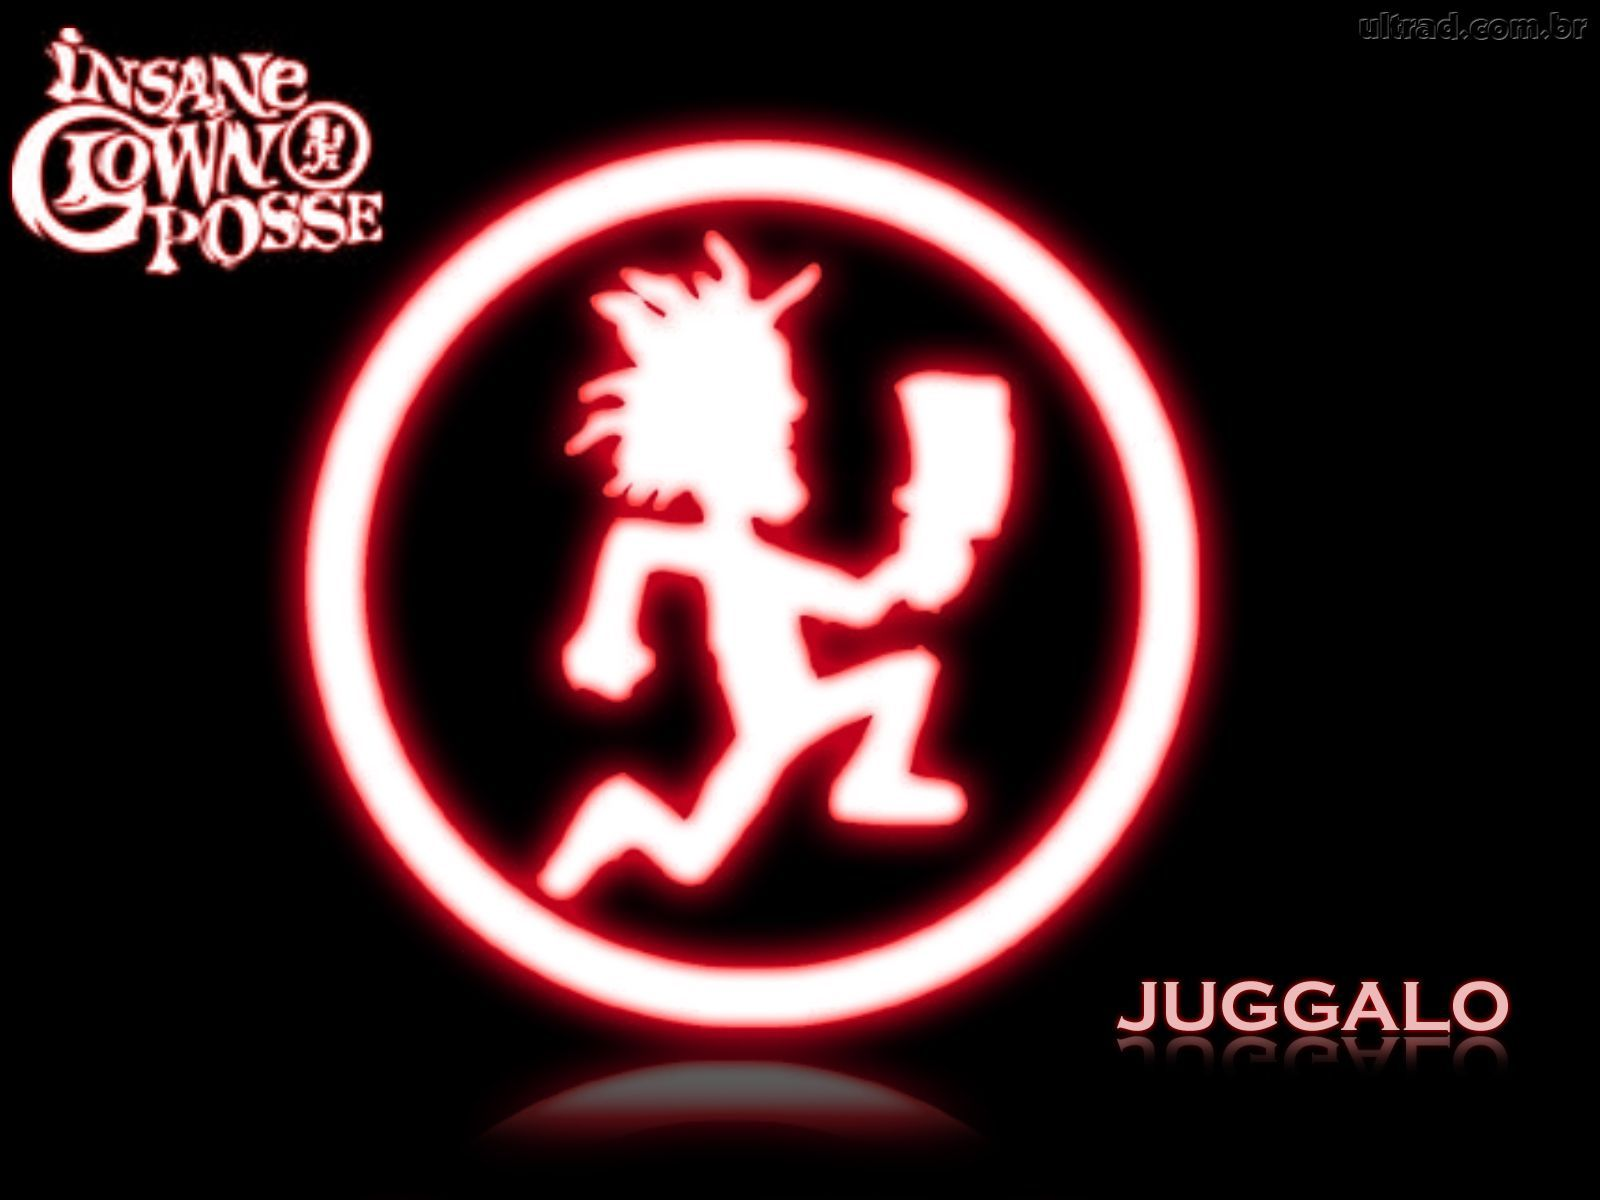 This Is The Popular Mascot For The Whole Juggalo Group Called The